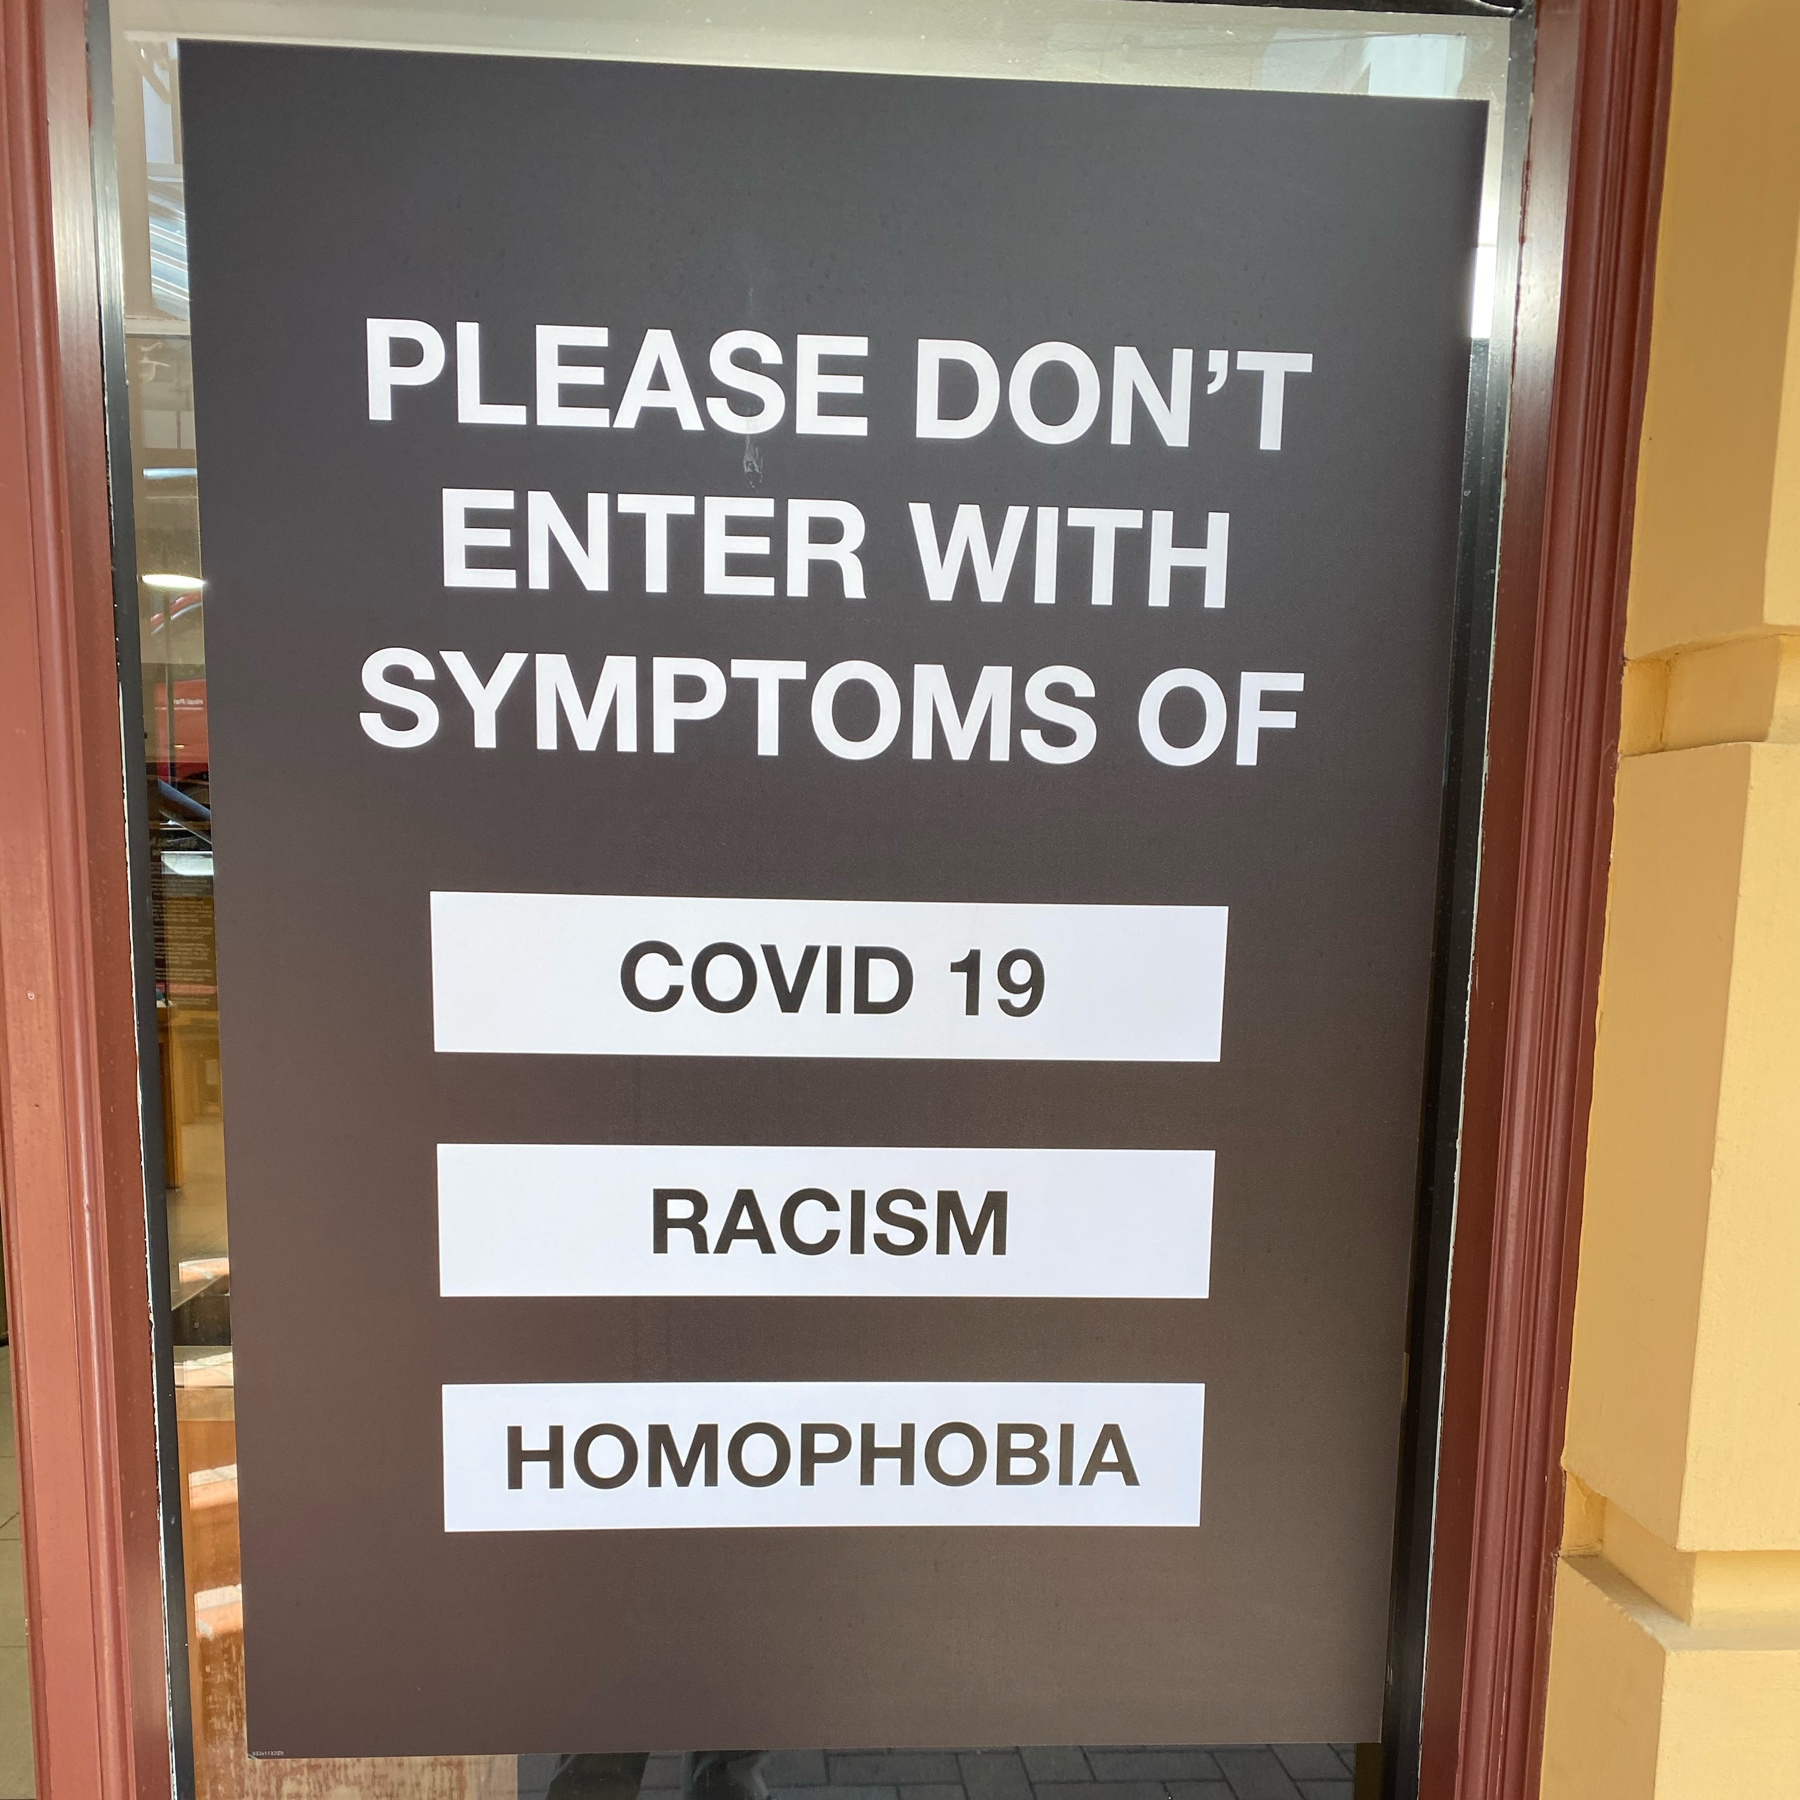 Shop window sign with words: please dont enter with symptoms if Covid 19, racism, homophobia.